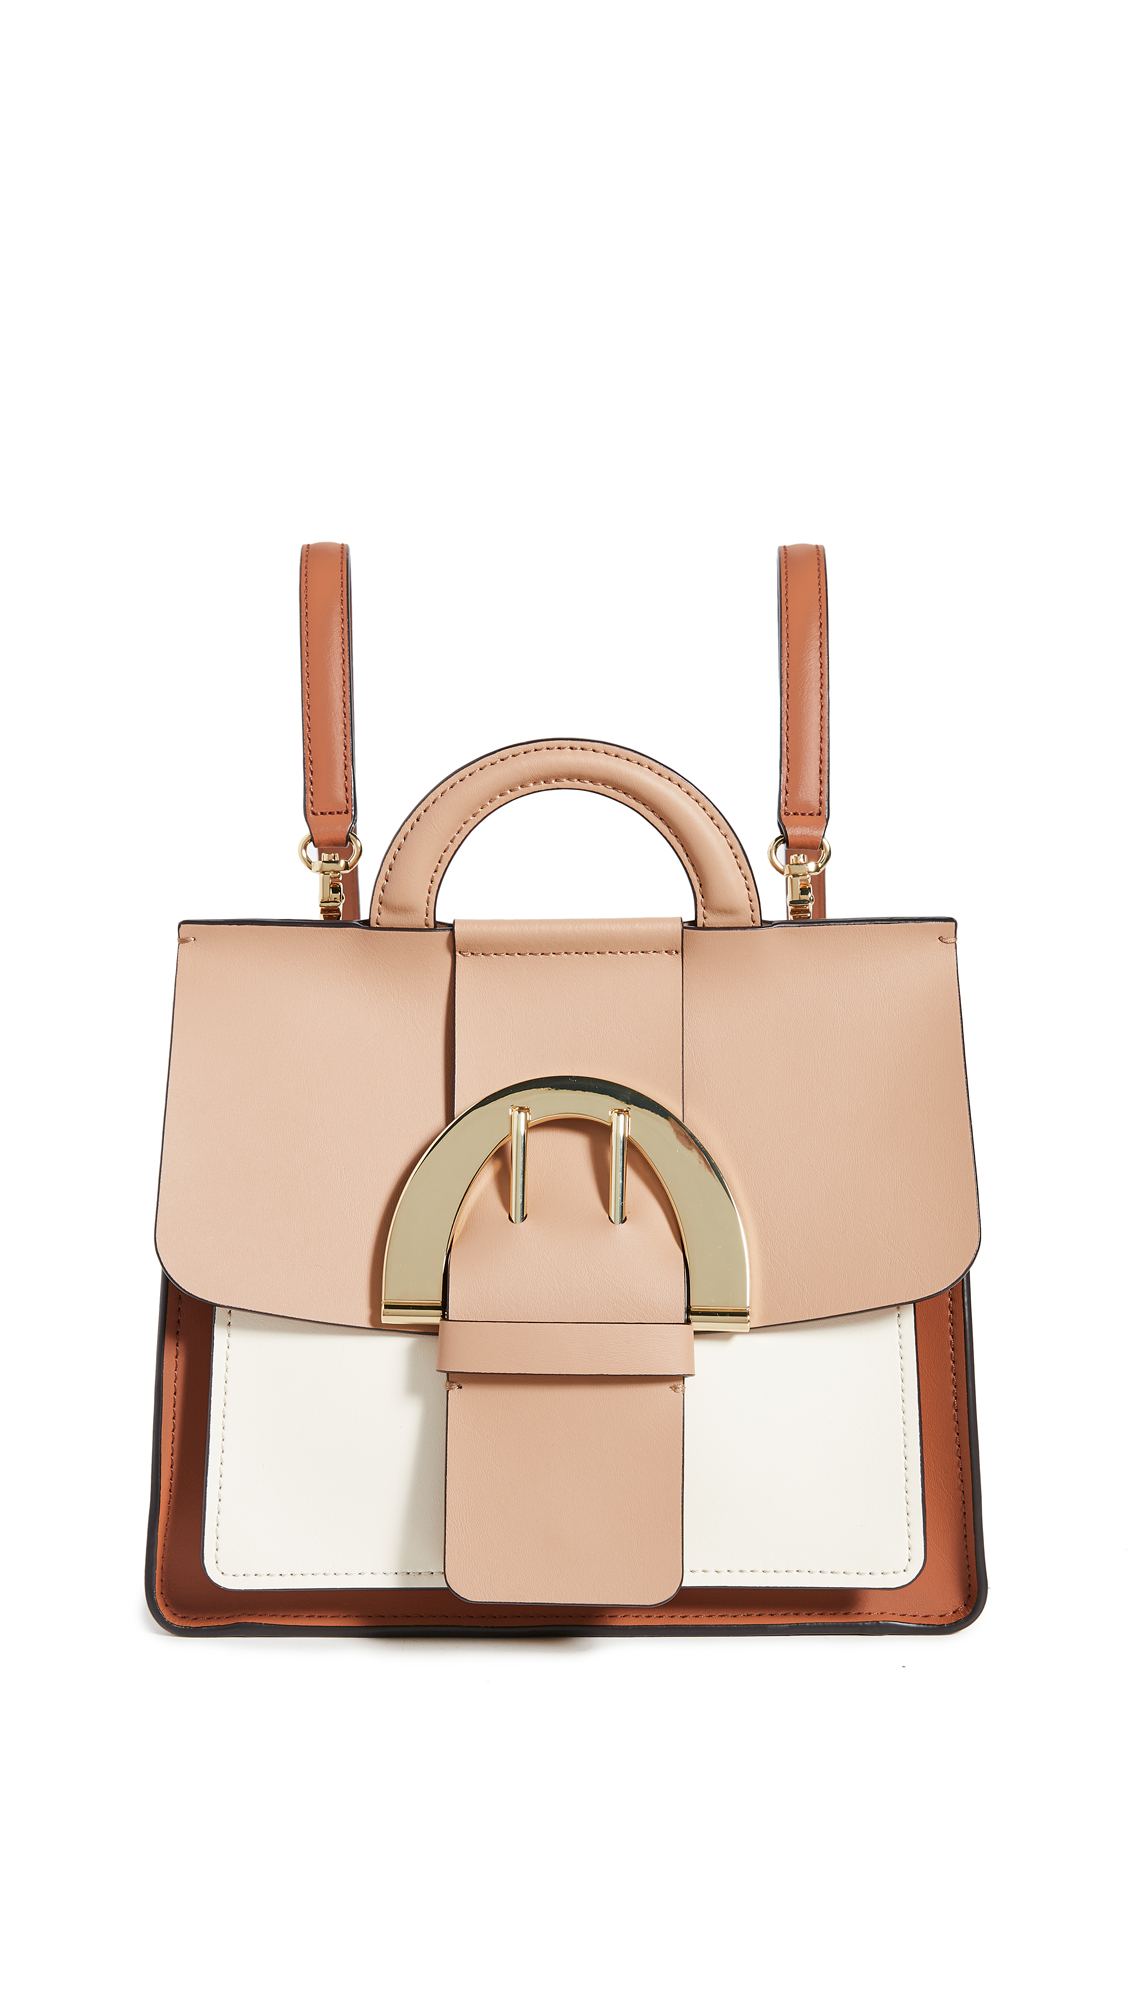 Zac Zac Posen Biba Buckle Backpack In Latte